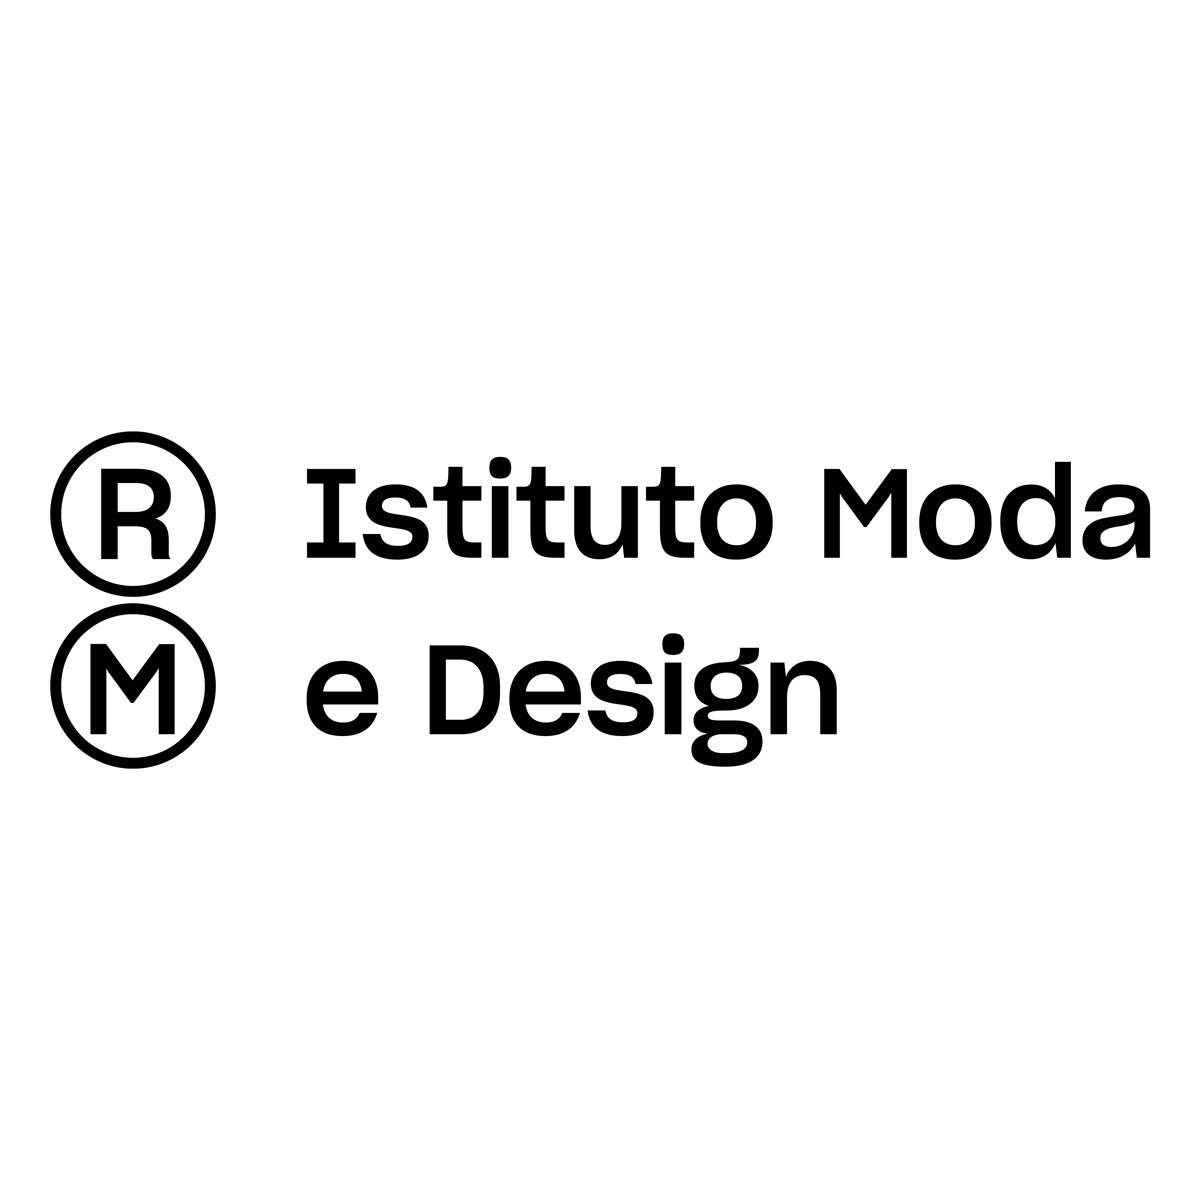 RM Istituto Moda e Design Scholarship - Call for Applications